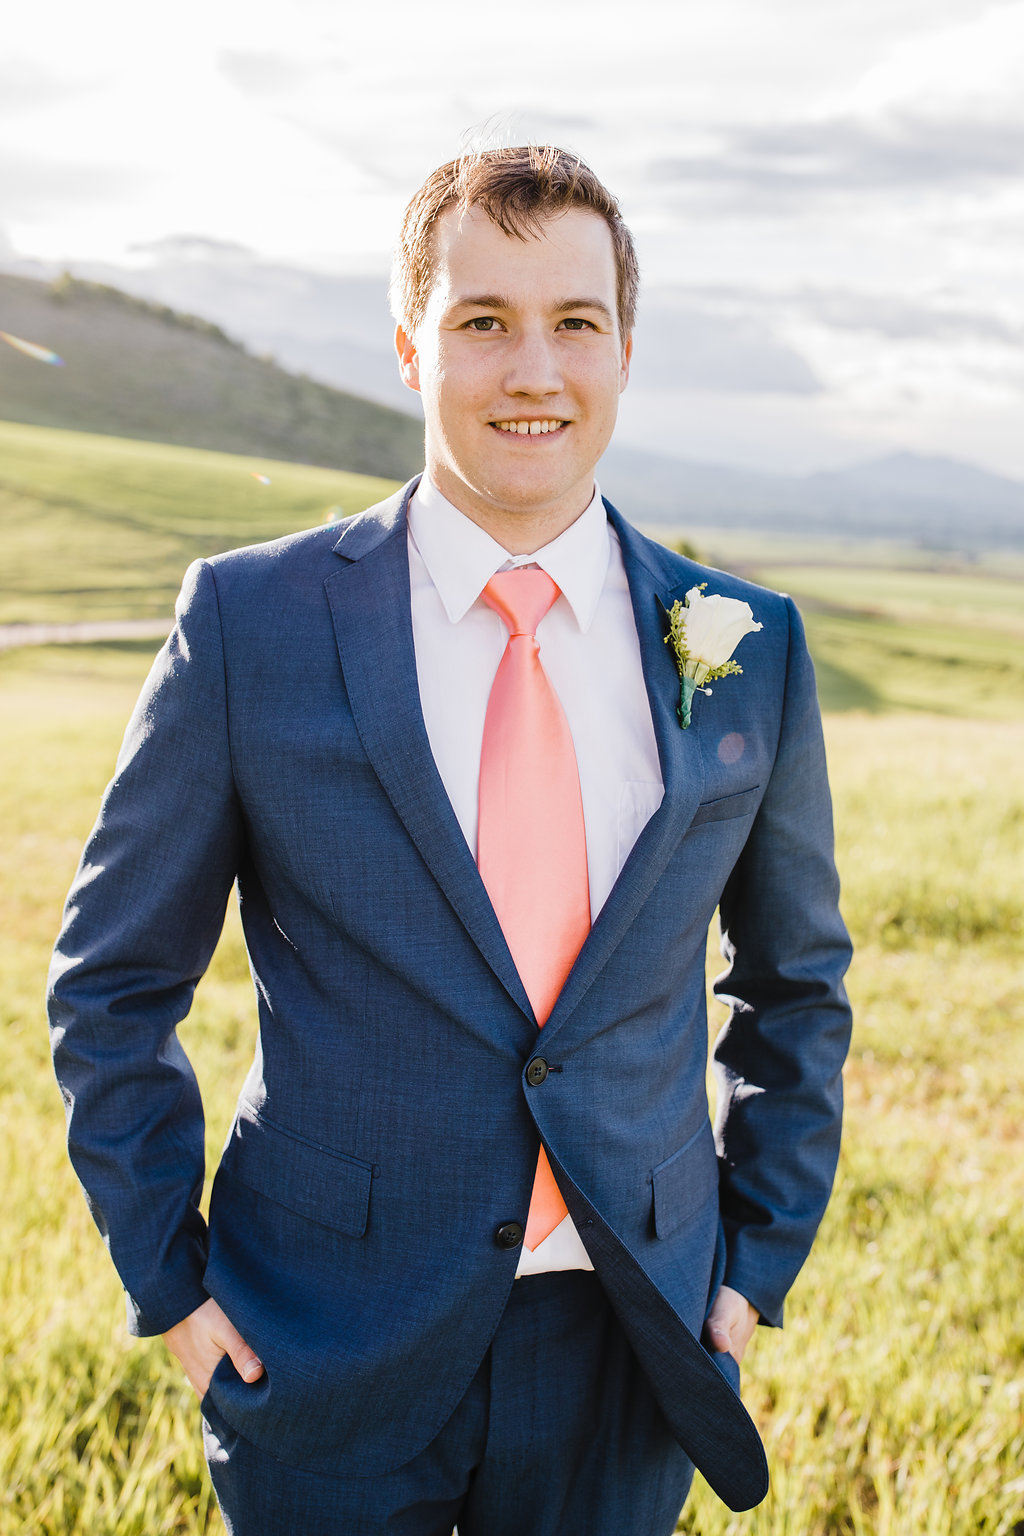 navy suit groom wedding photography mountainous formals photo shoot in logan utah